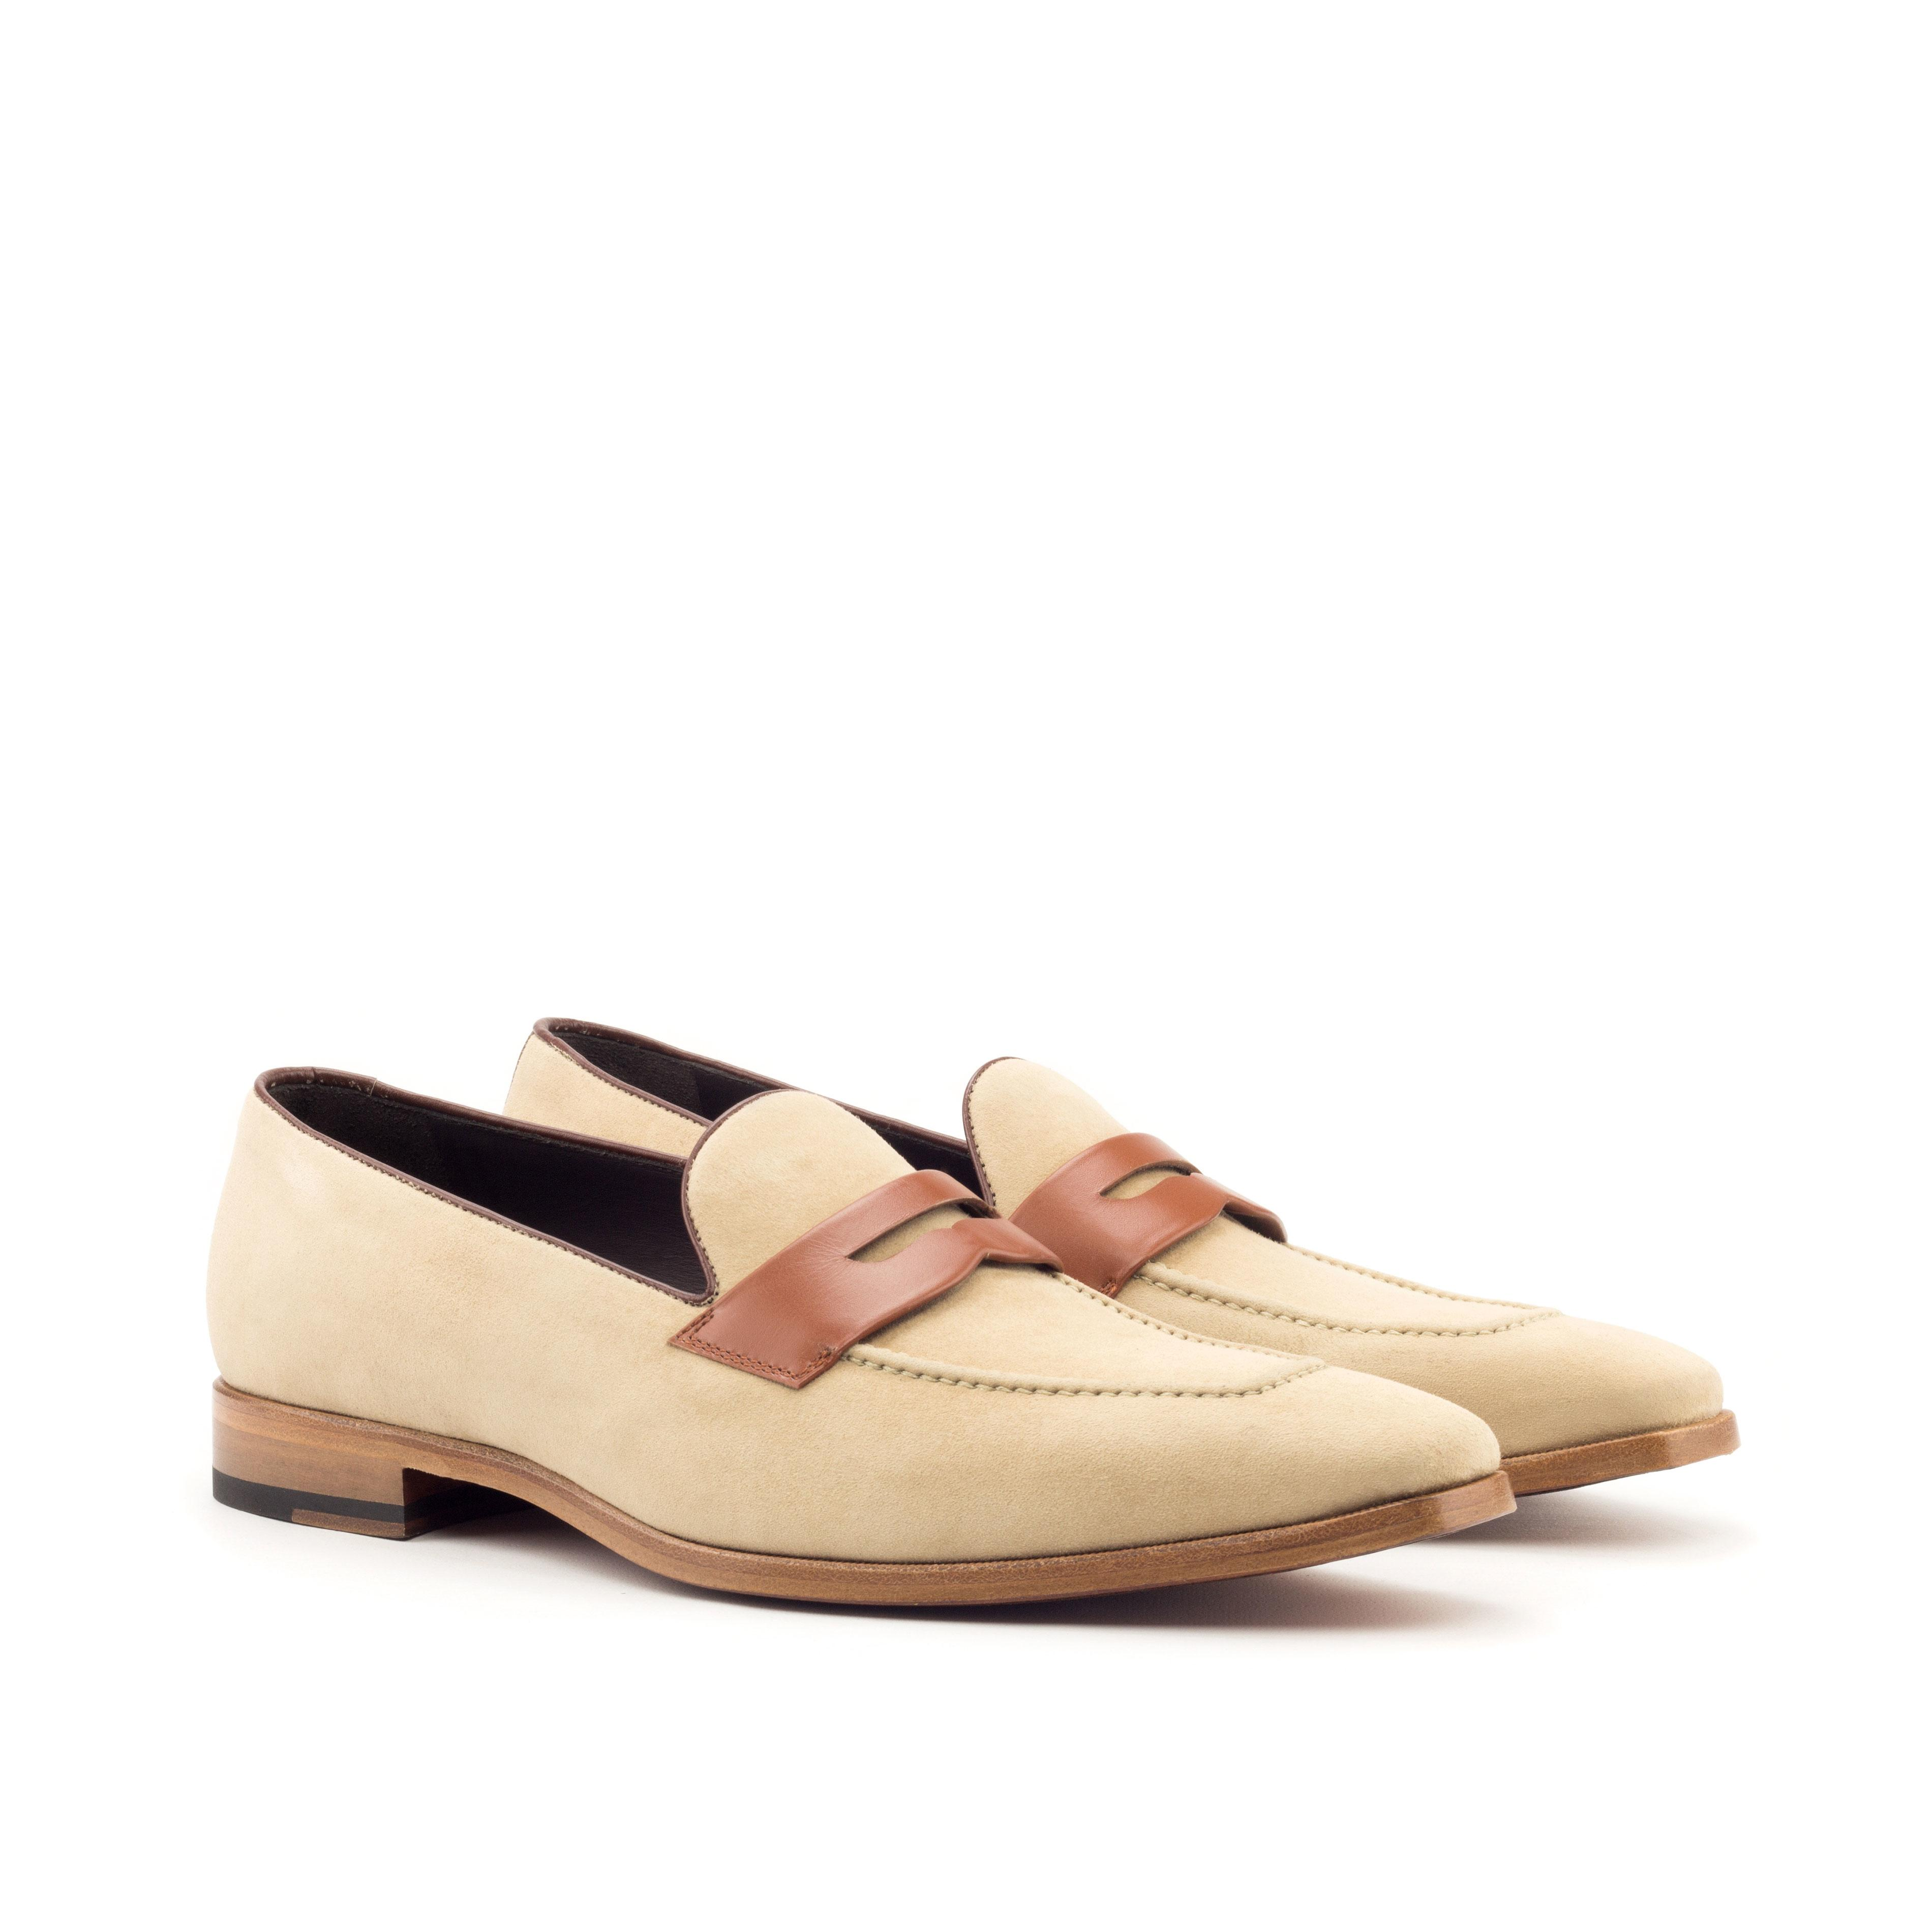 d903d3d36c3 Manor of London Taupe Suede Penny Loafers with Cognac Calf Mask